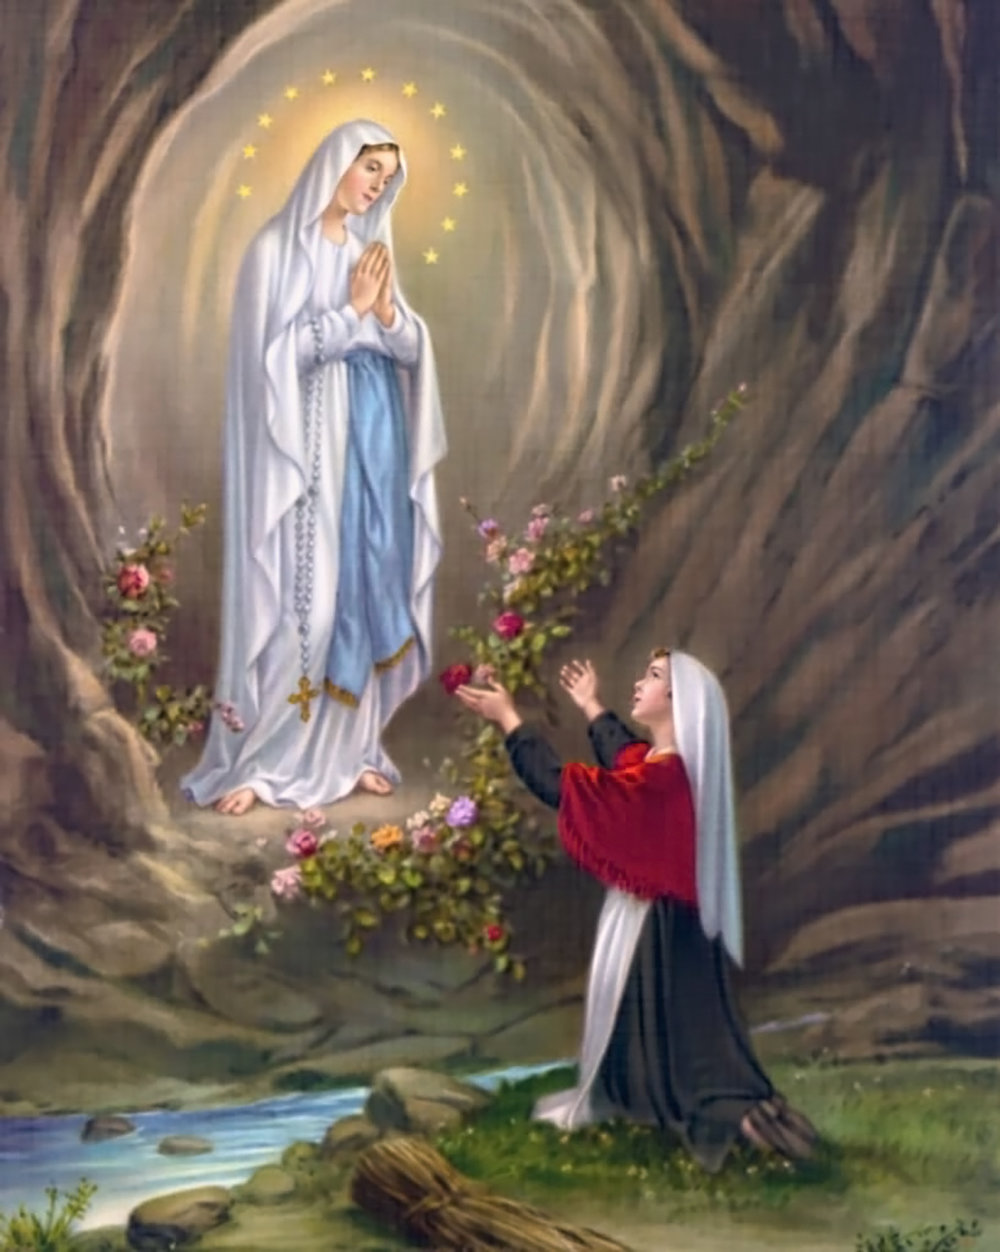 Our Lady of Lourdes and St Bernadette